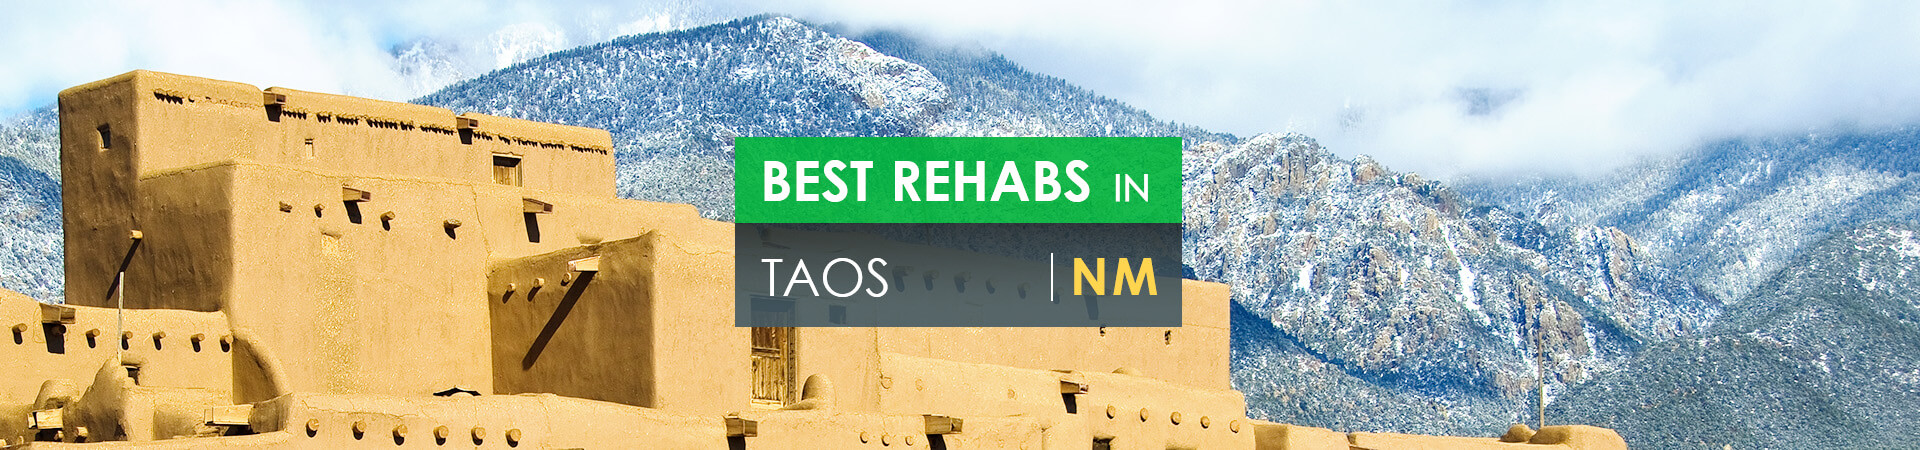 Best rehabs in Taos, NM